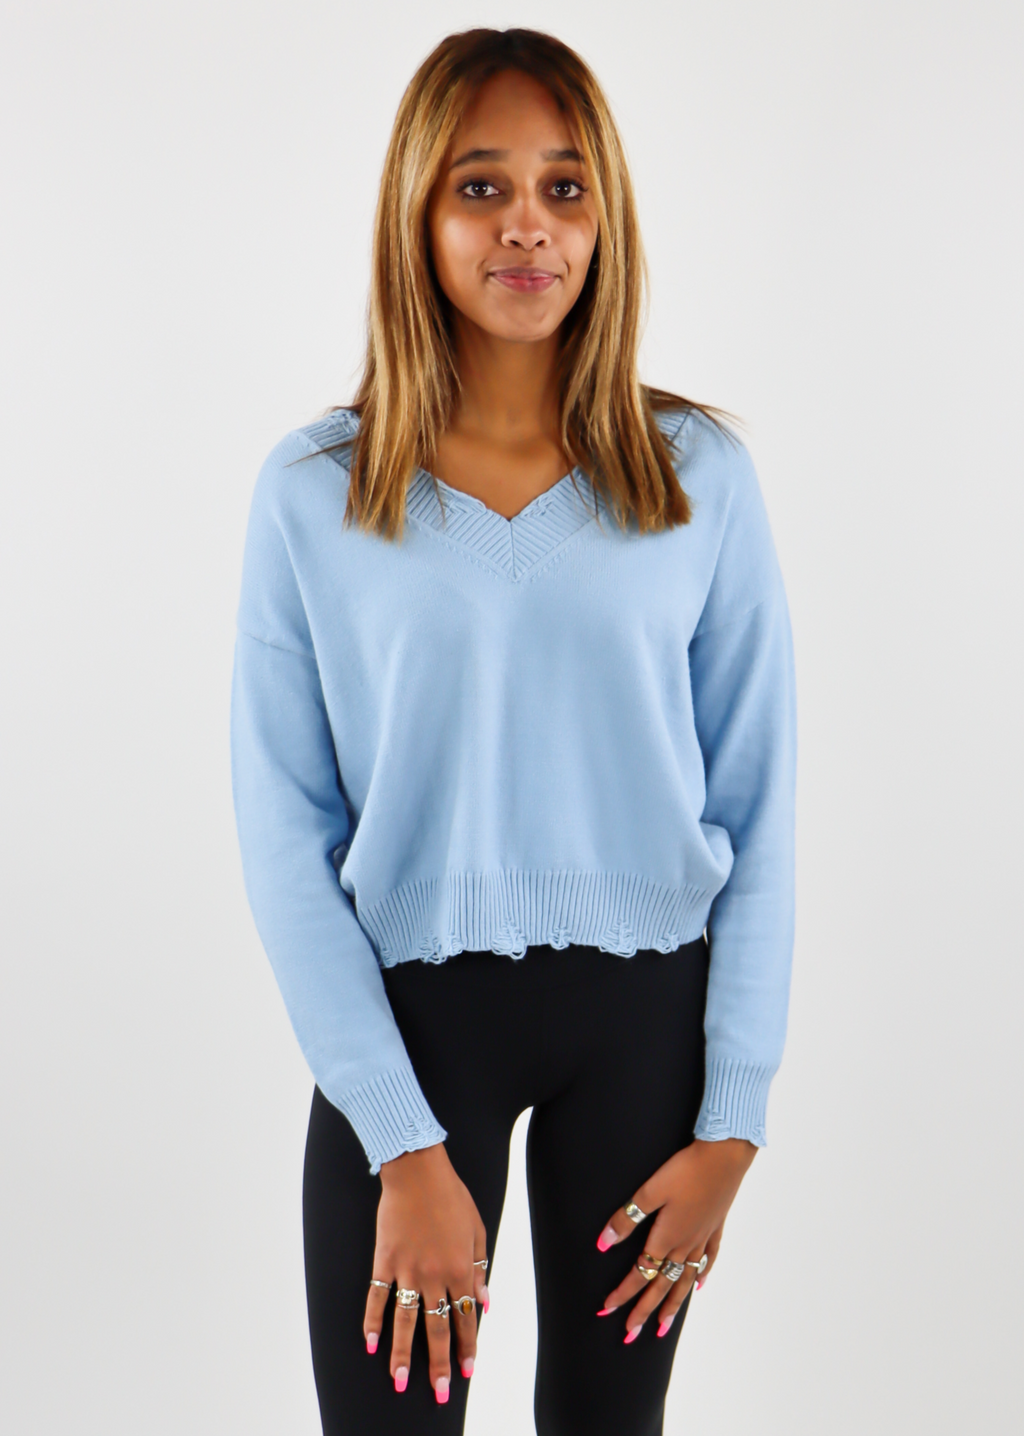 The Sweet Life Sweater ★ Baby Blue - Rock N Rags